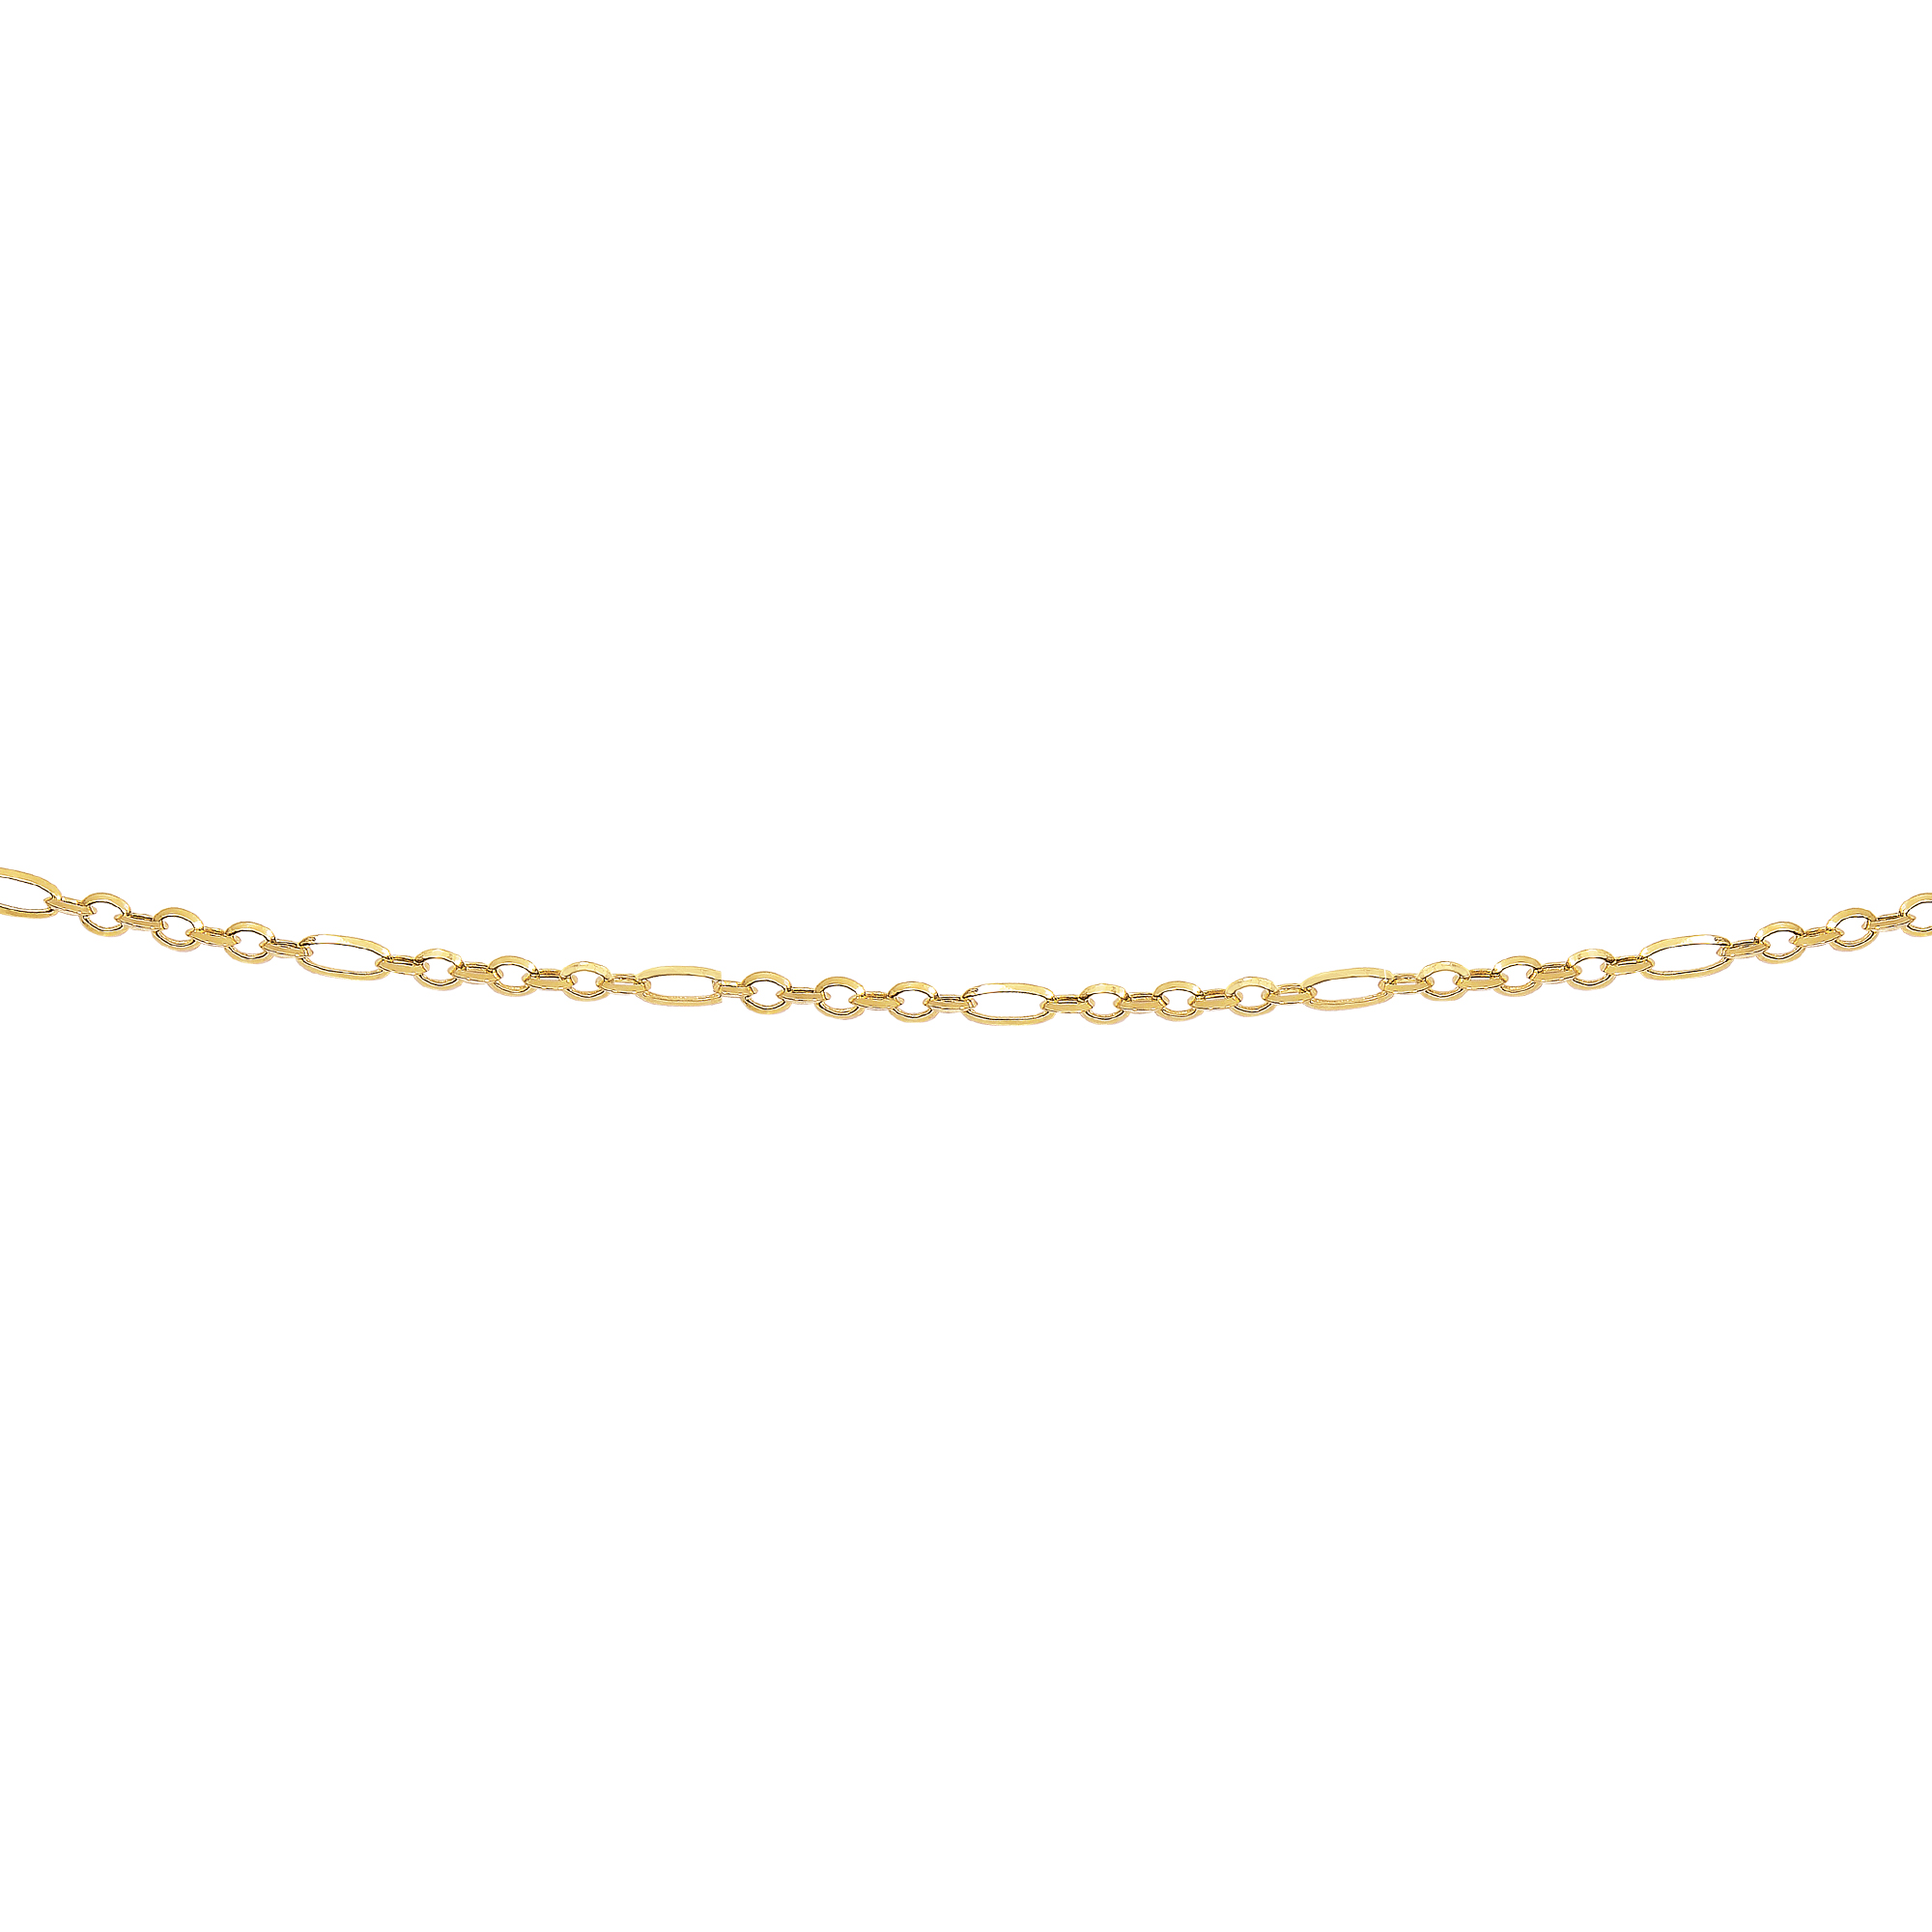 LUXURMAN Solid 14k Gold Rolo Chain For Women Polished Link 2.9mm Wide